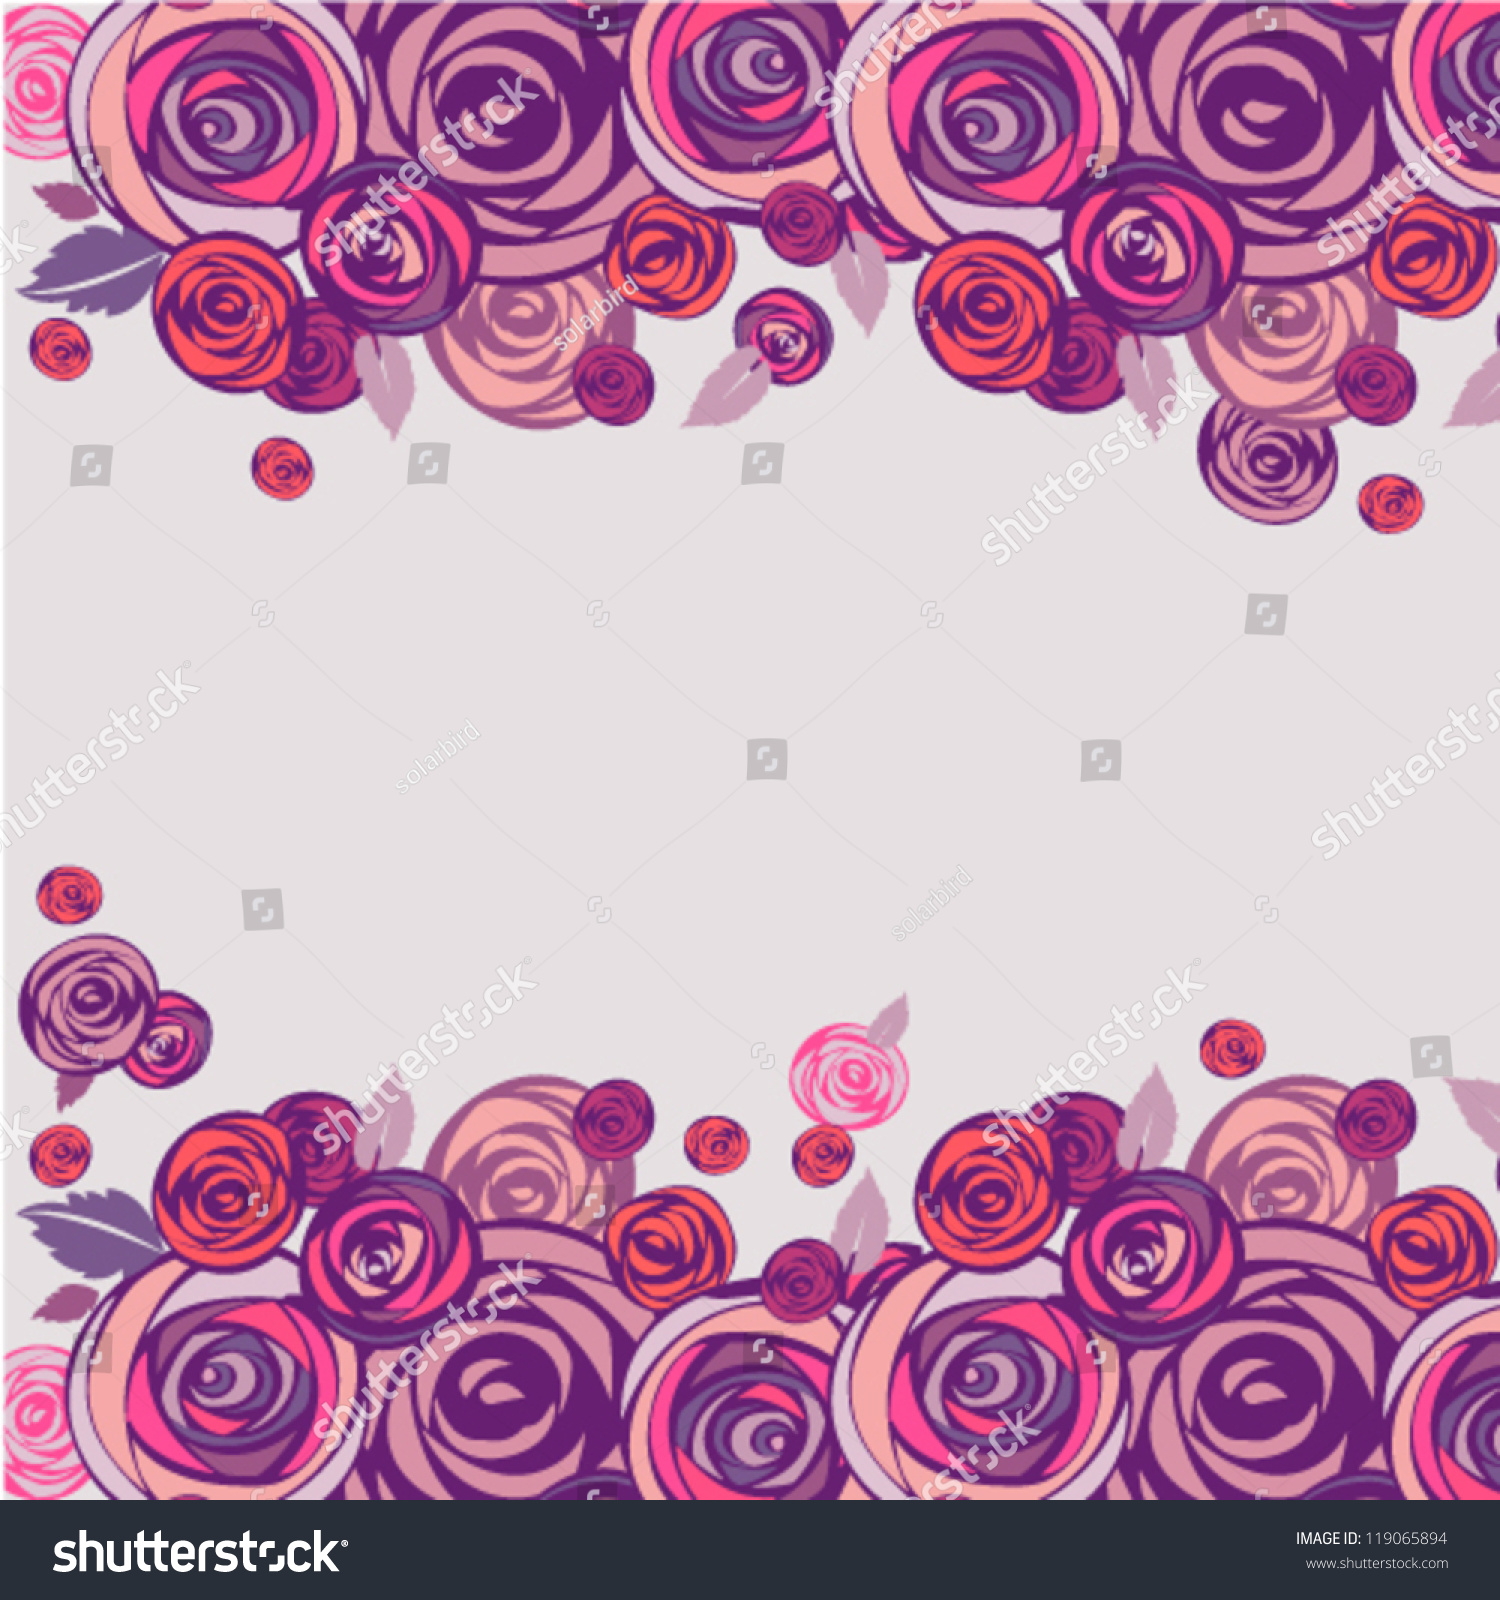 Floral Background Pink Purple Roses Border Royalty Free Stock Image